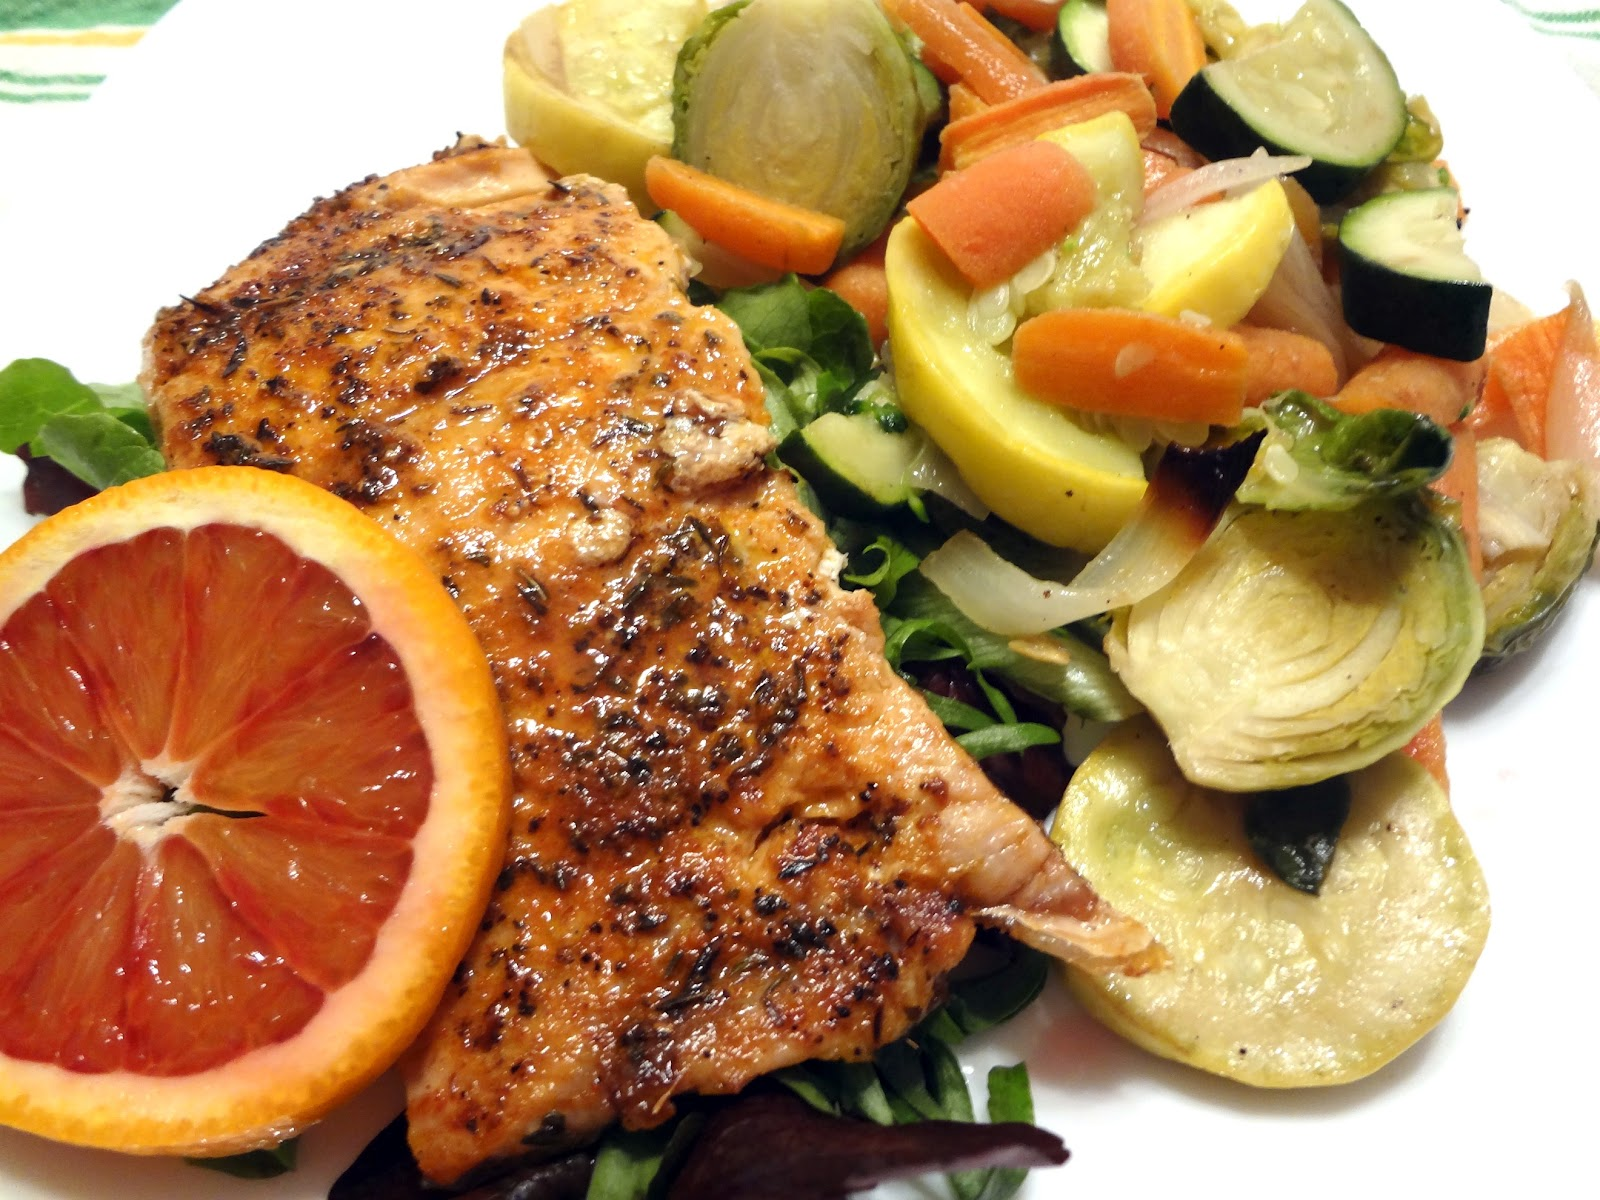 Attack of the Hungry Monster: Blackened Salmon with Blood Orange